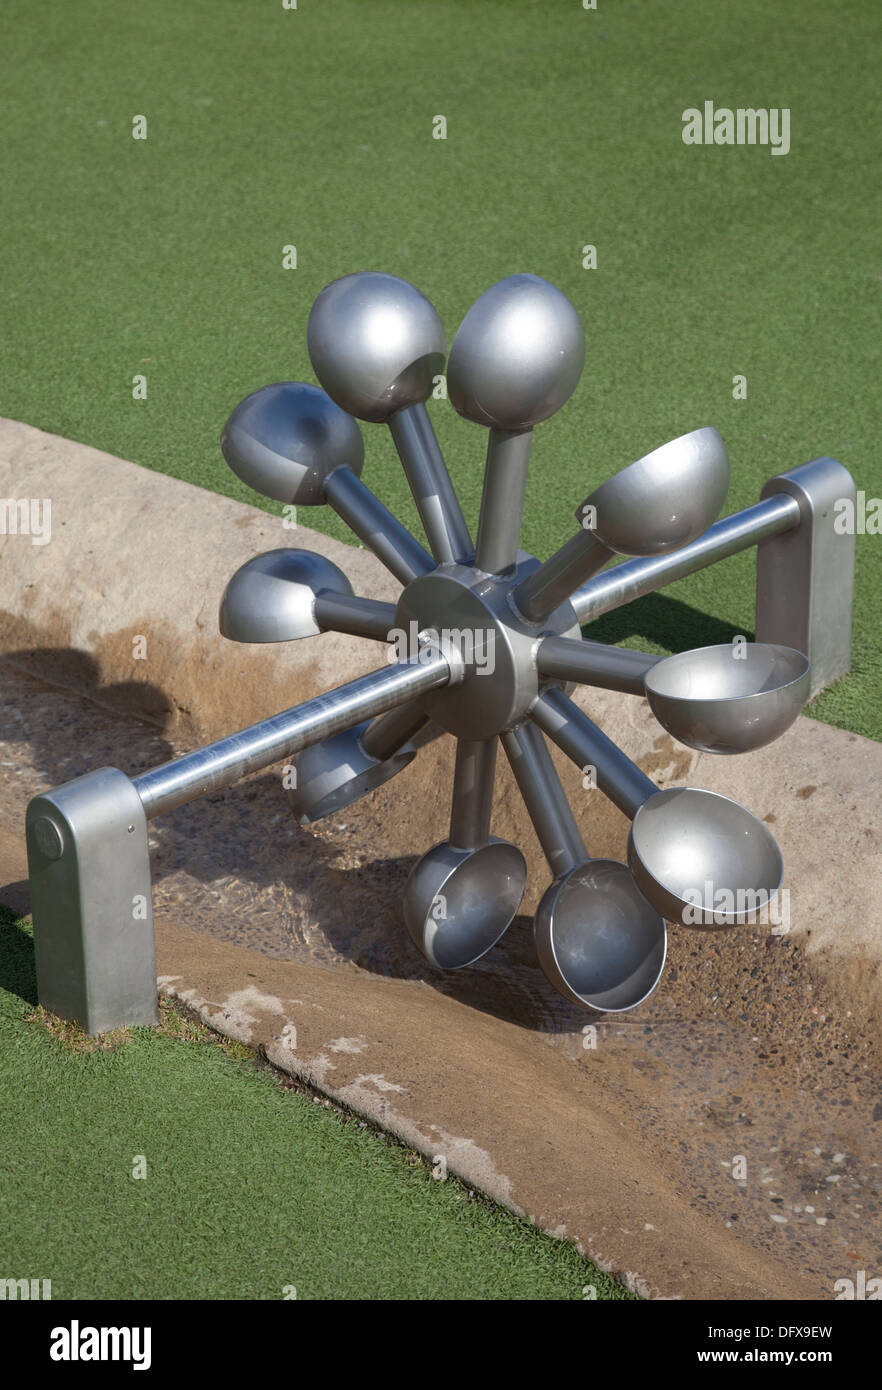 pelton wheel Define pelton turbine pelton turbine synonyms, pelton turbine pronunciation, pelton turbine translation, english dictionary definition of pelton turbine n a type of impulse turbine in which specially shaped buckets mounted on the perimeter of a wheel are struck by a fast-flowing water jet.